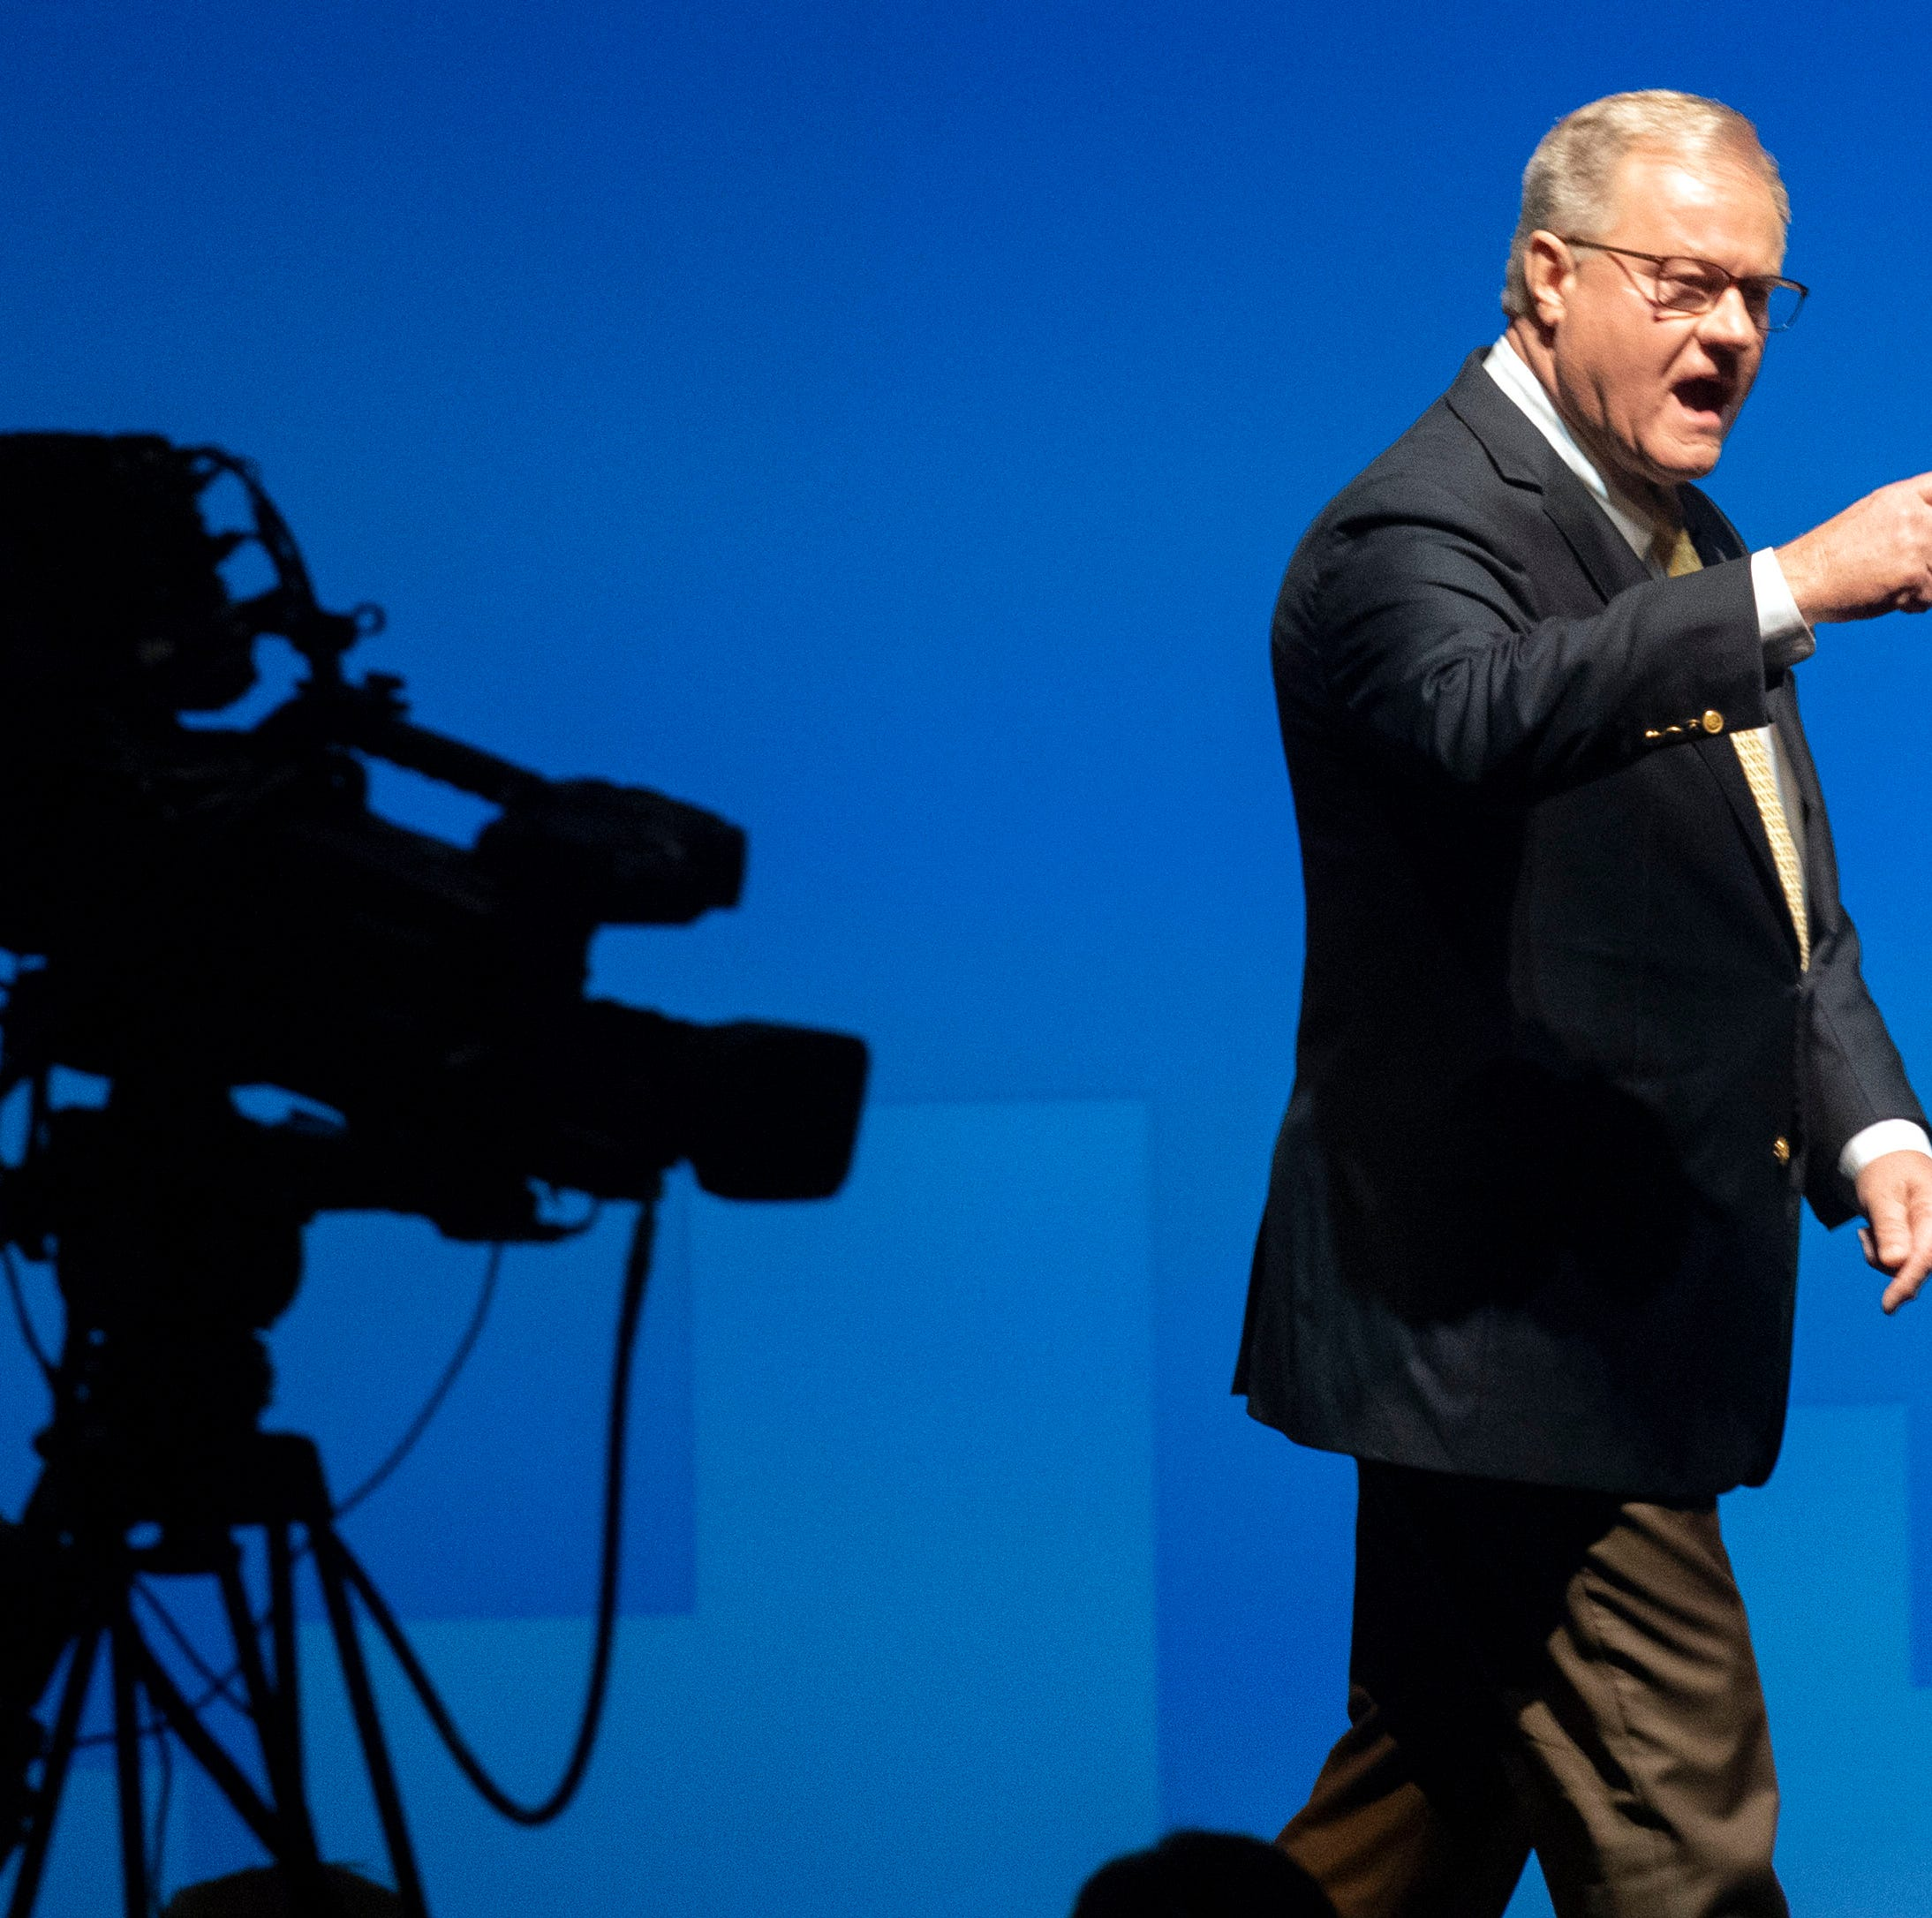 Scott Wagner, candidate who made 'golf spikes' comment, called violent by both parties